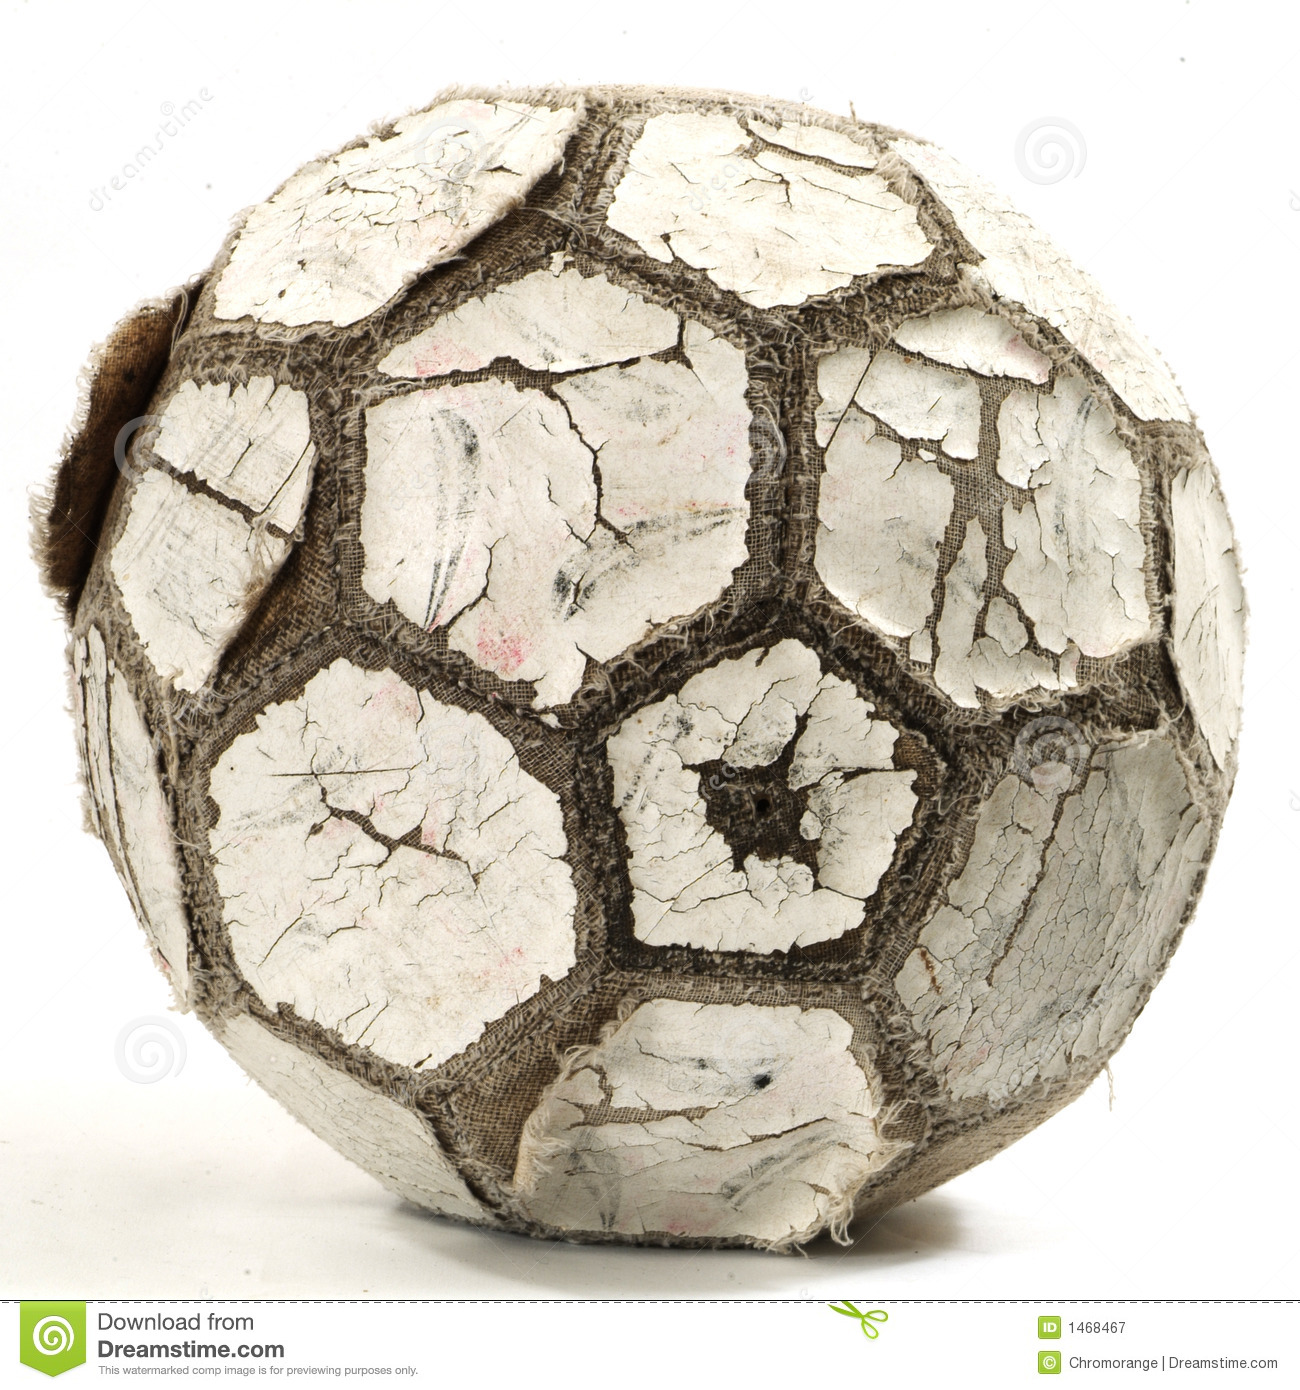 Old Well Used Leather Black Black and White Soccer Ball.